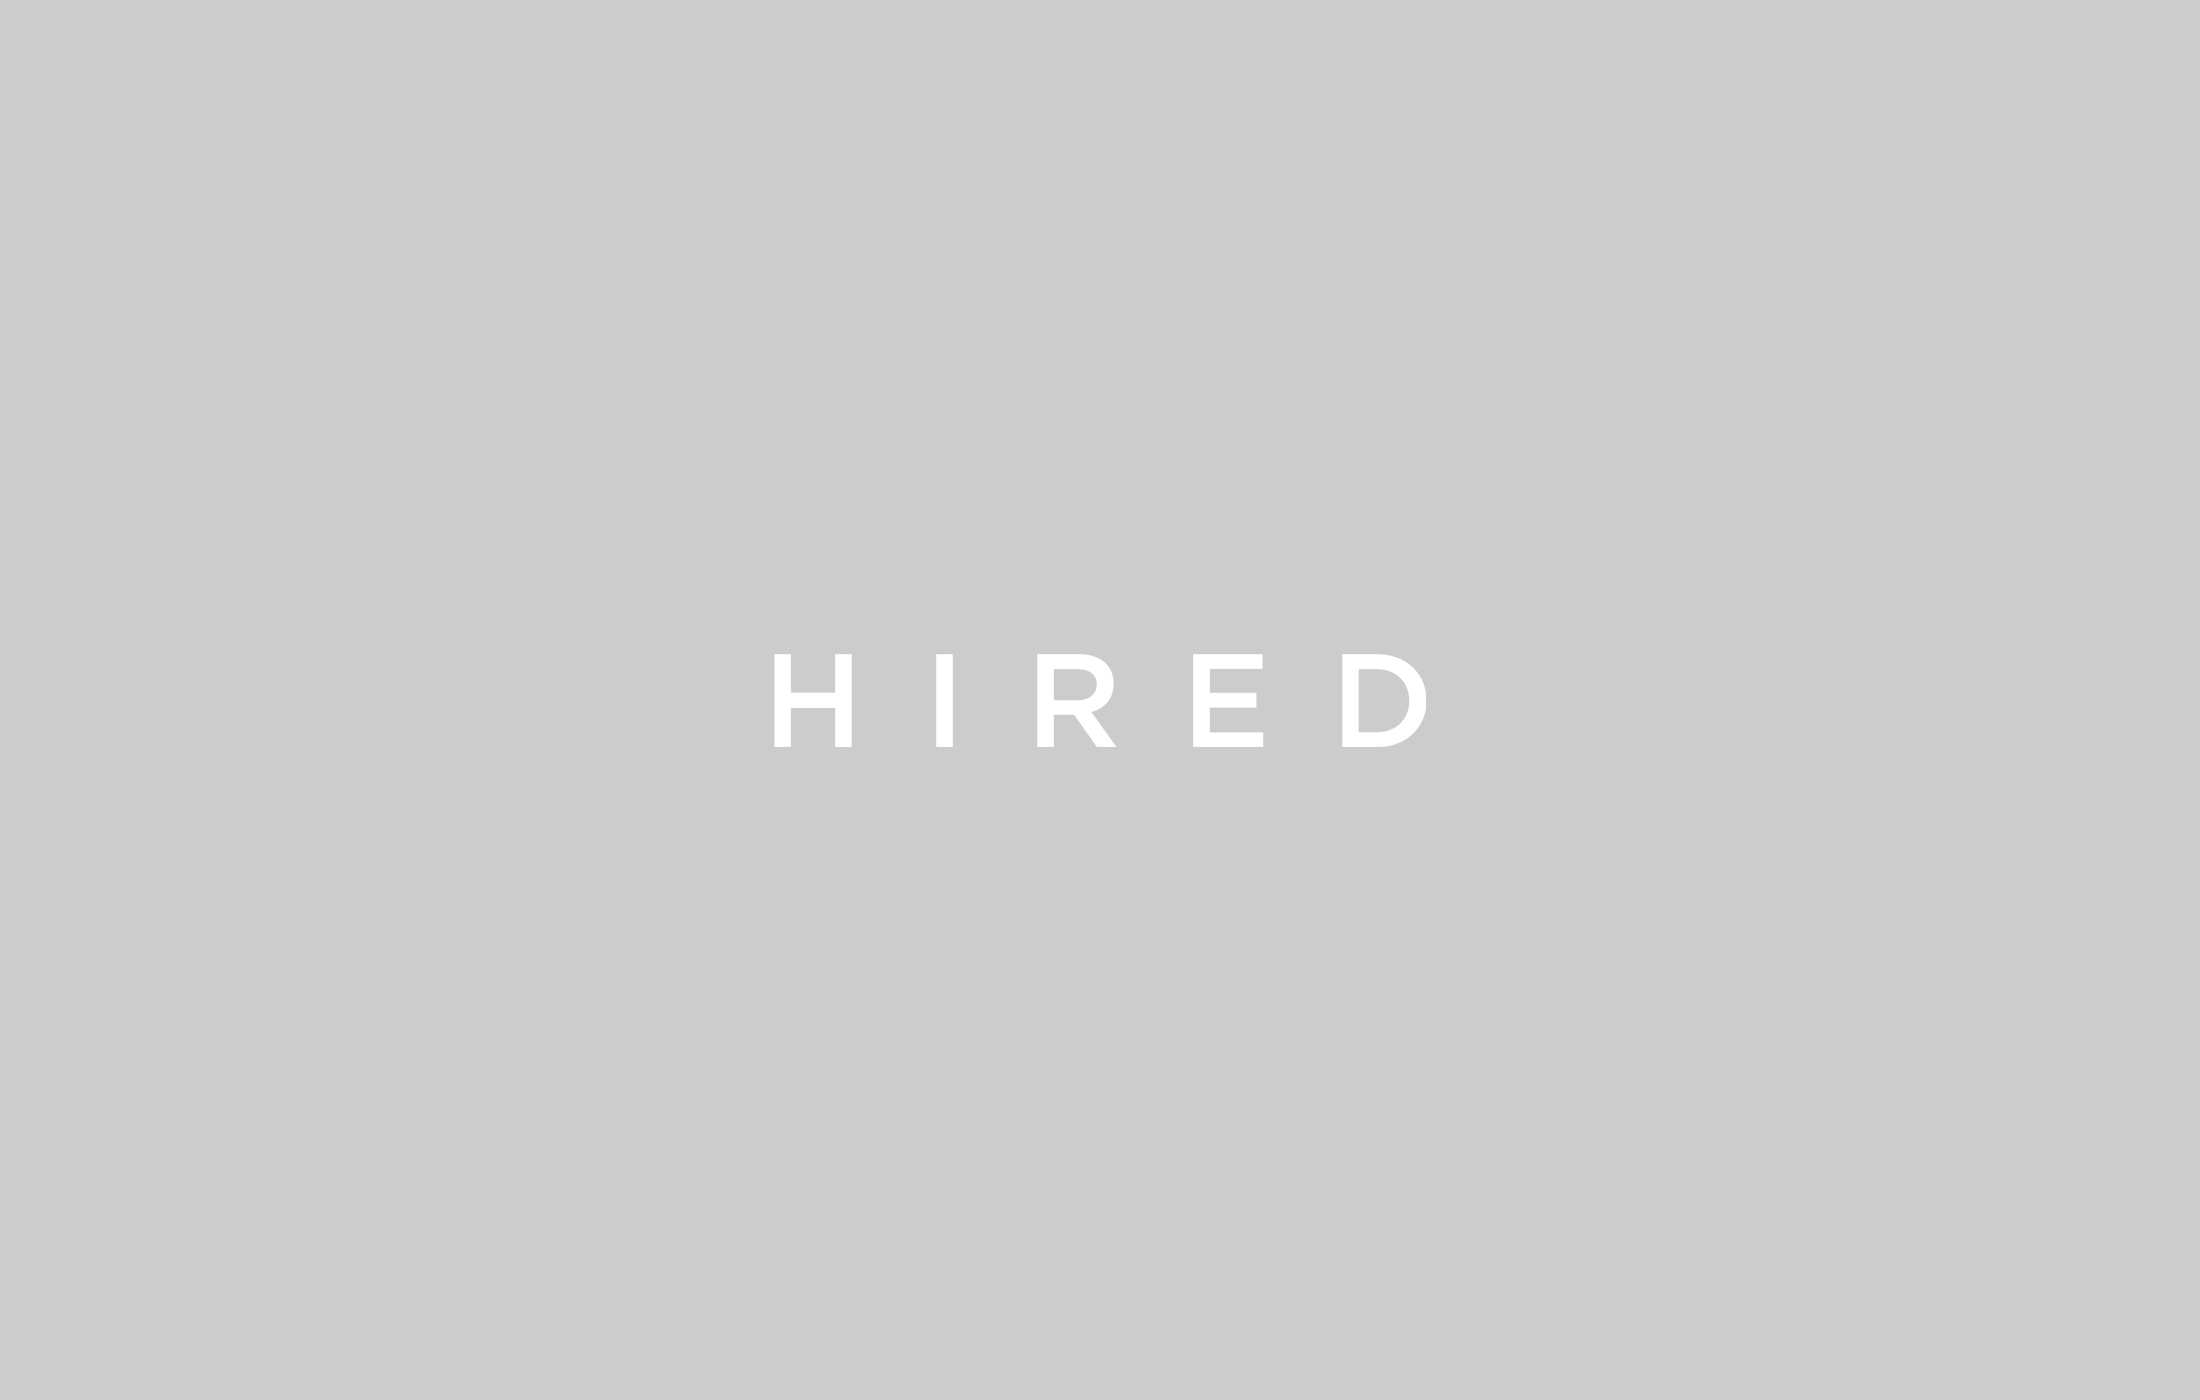 hired-begins-testing-boston-market-sees-2500-candidate-sign-ups